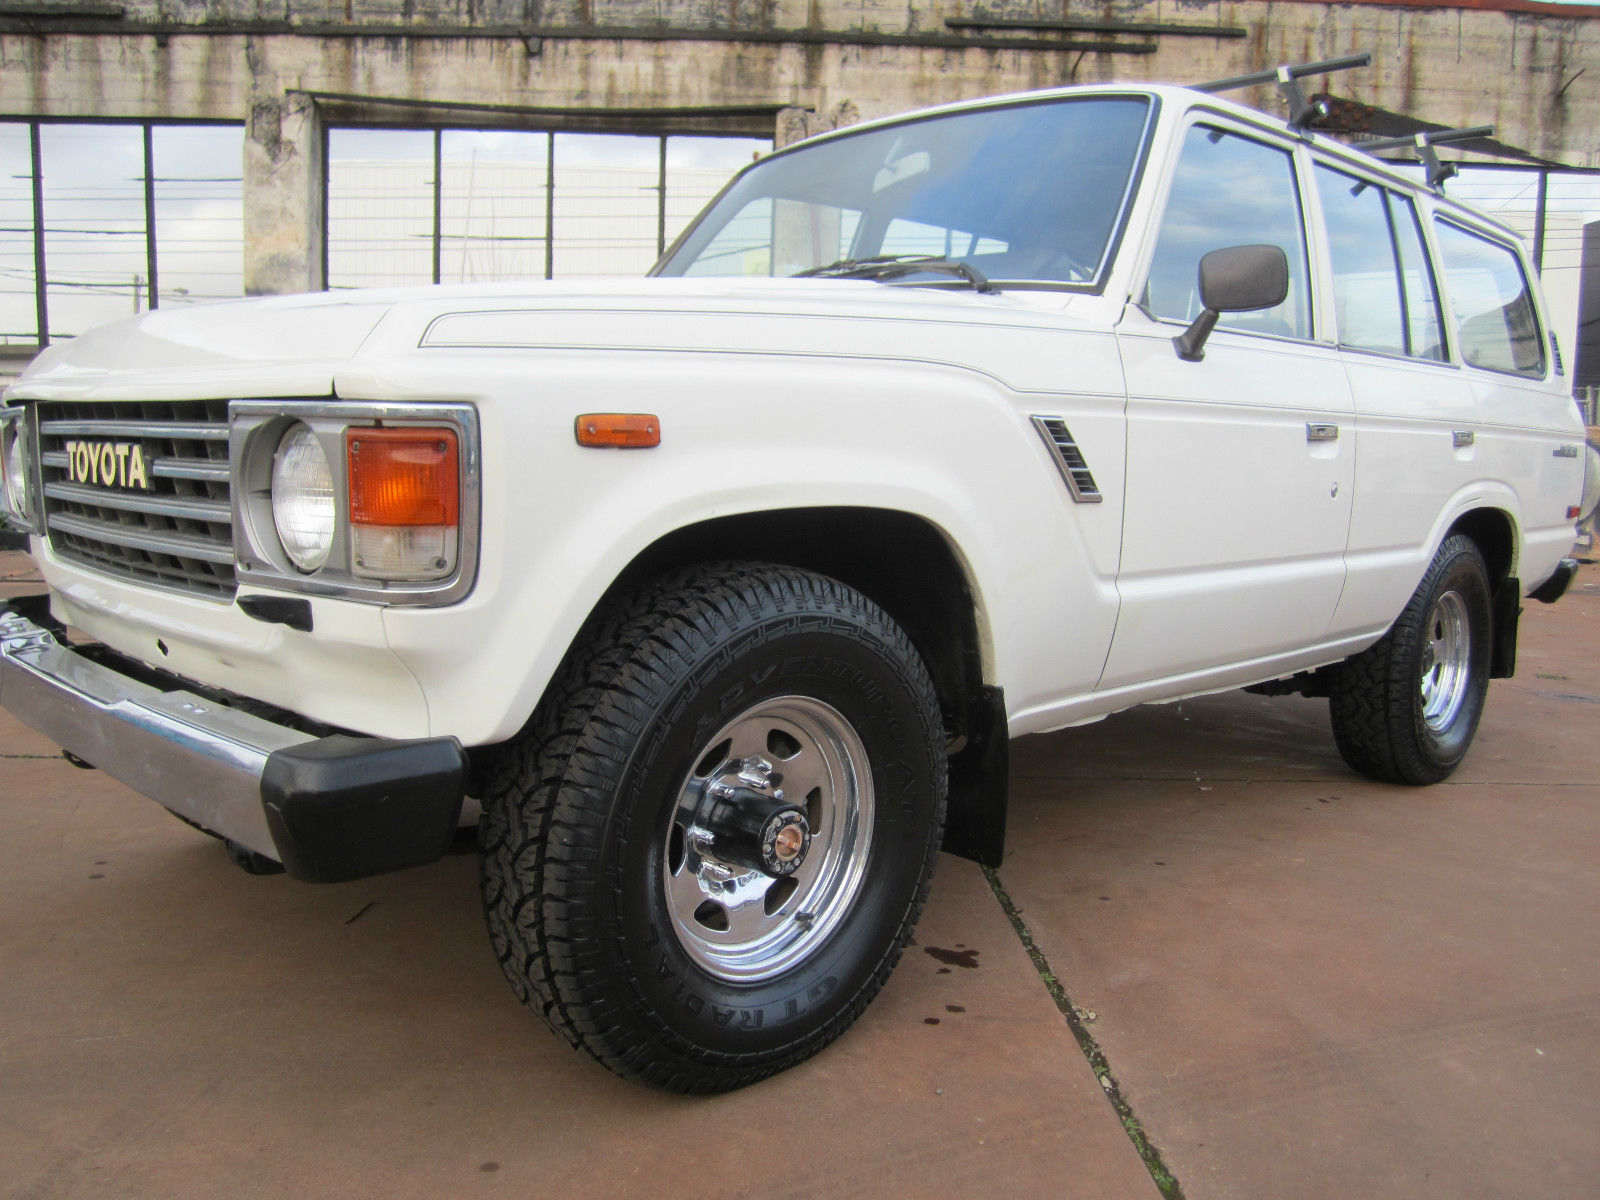 1987 Toyota Land Cruiser Fj60 Extremely Clean And Original No Rust